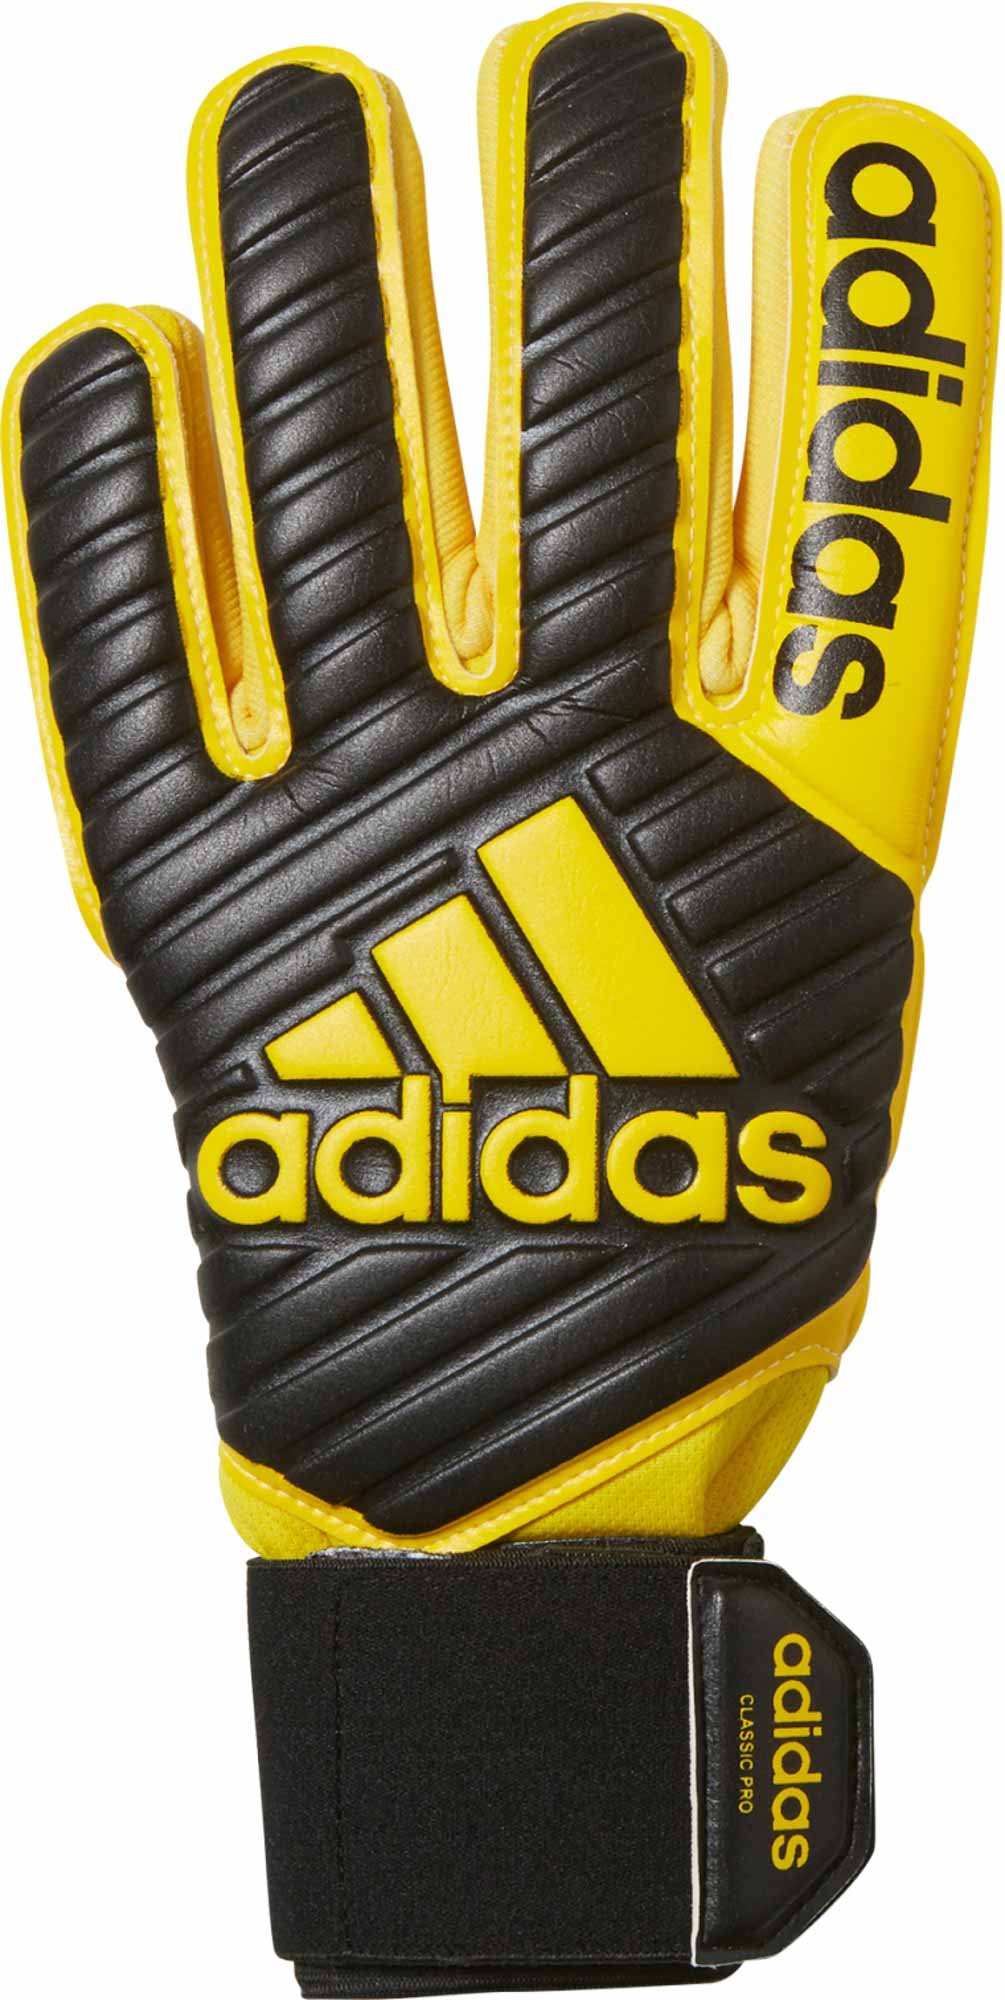 3266f02ae Black and Yellow adidas Classic Pro Gloves - Goalkeeper Gloves